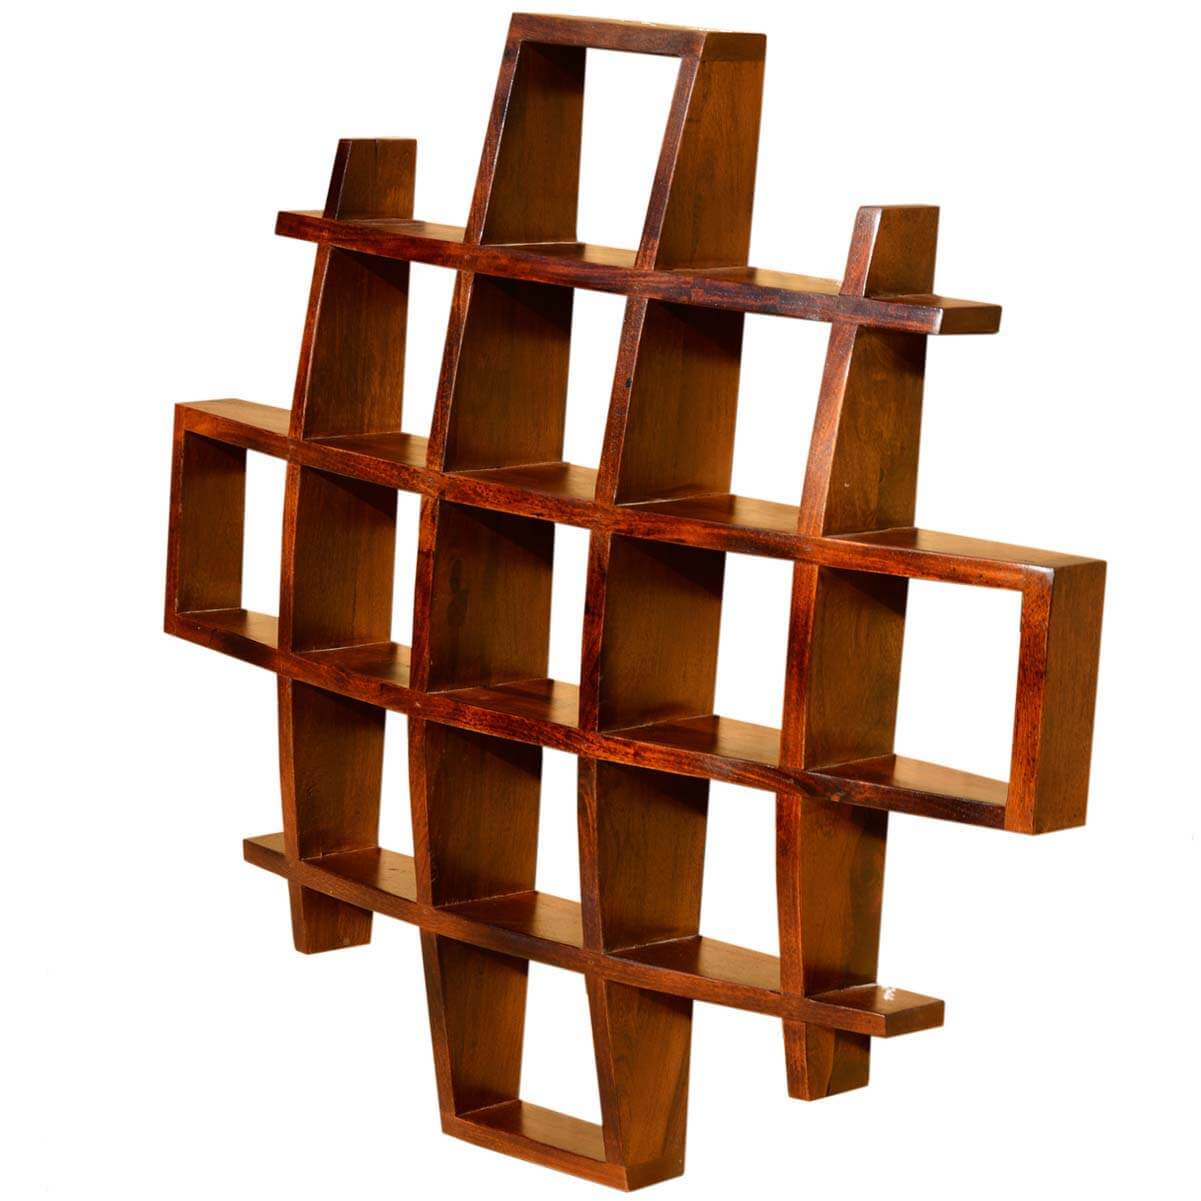 Wall Shelf Home Decor : Contemporary wood display wall hanging shelves home decor